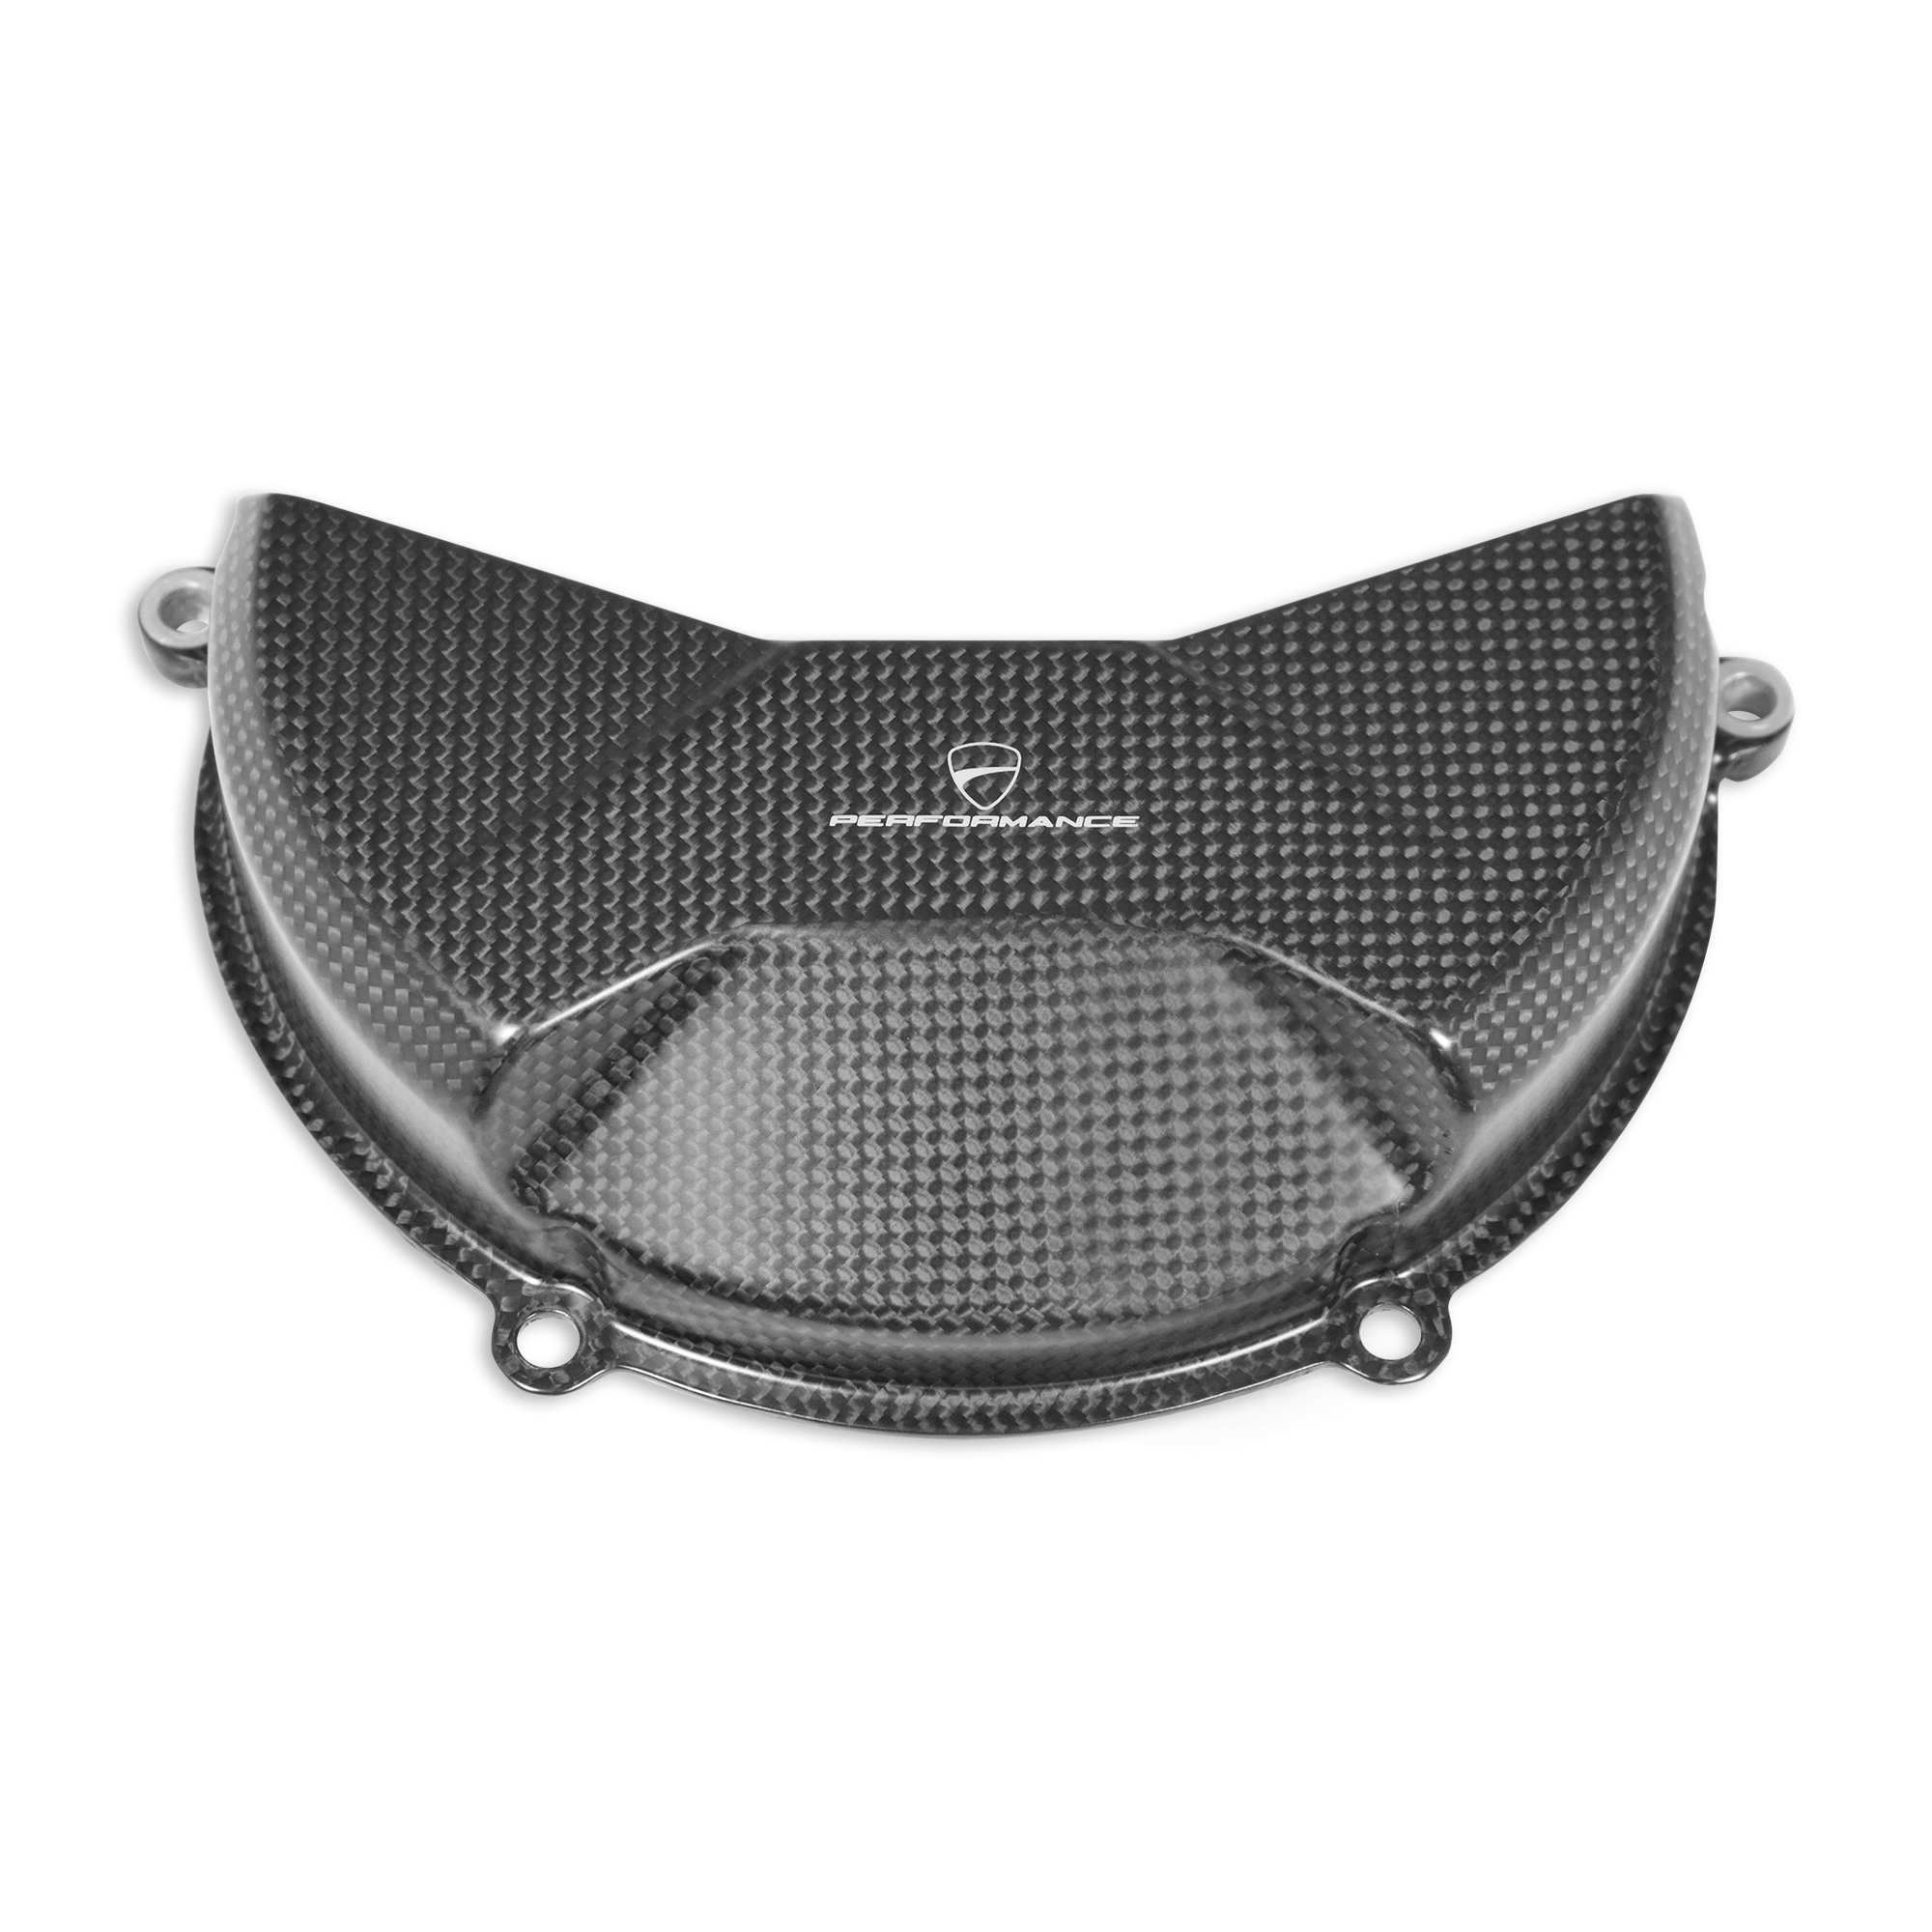 Carbon cover for clutch case. 96981071A